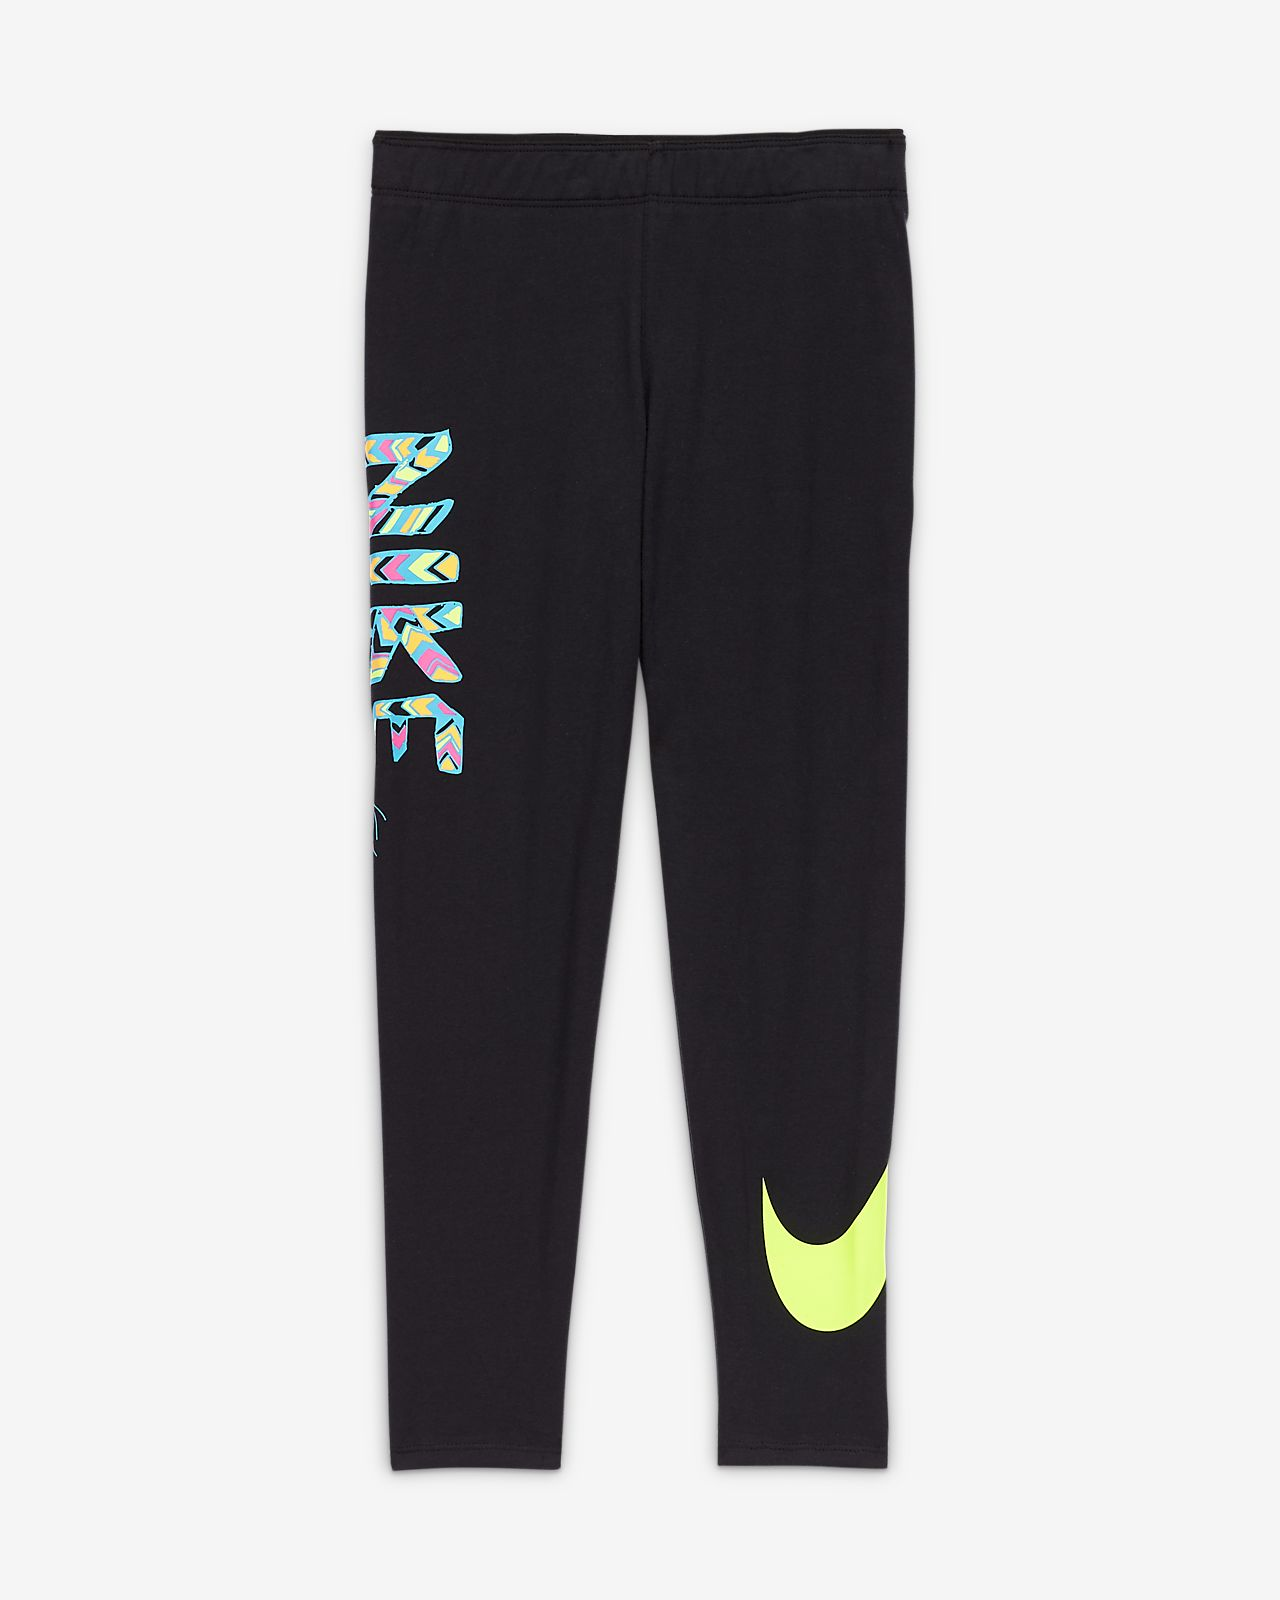 Nike Little Kids' Leggings